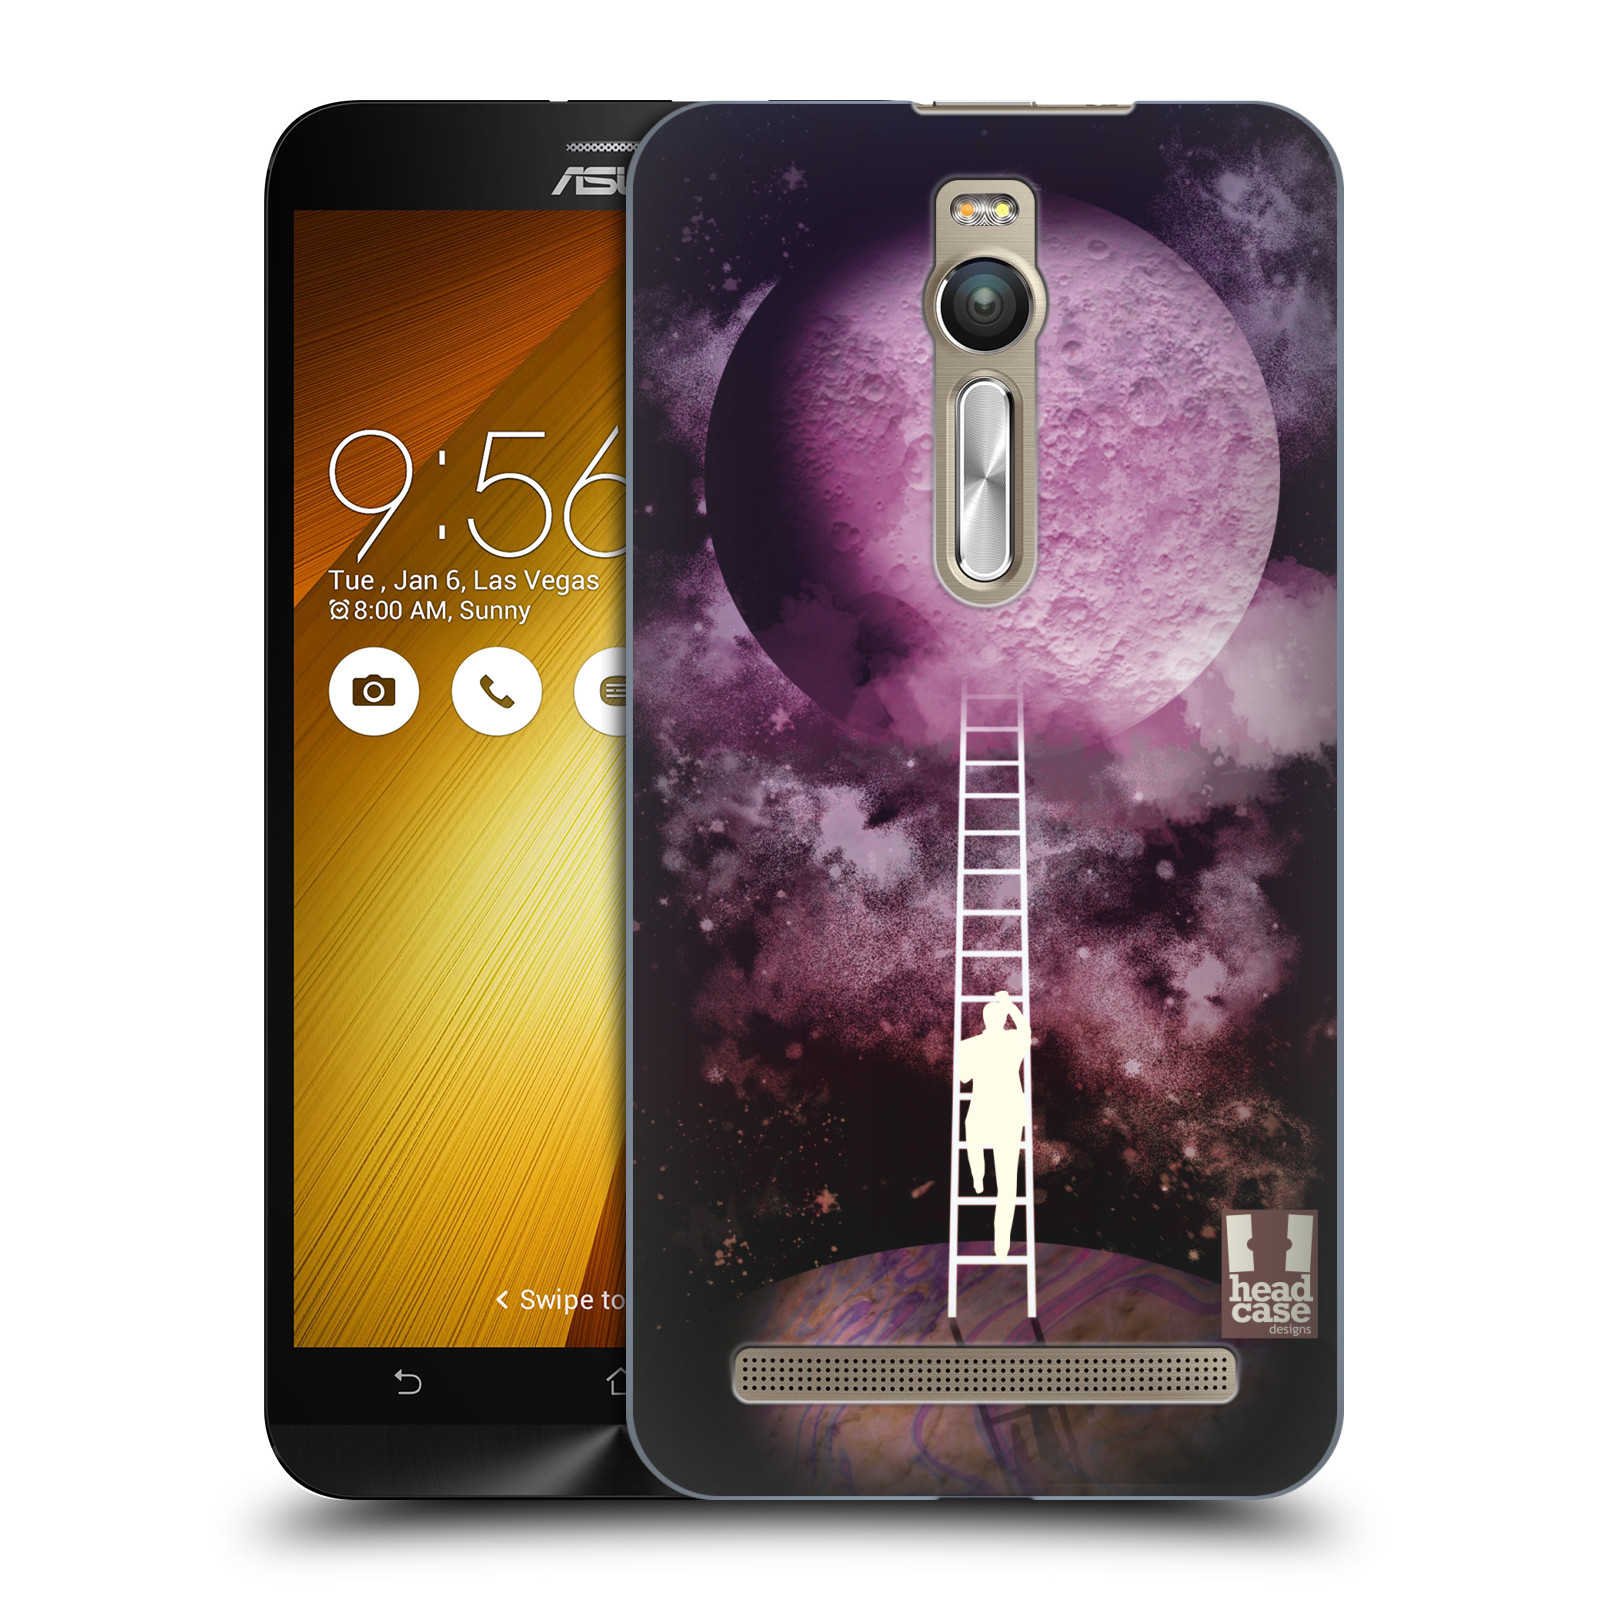 HEAD-CASE-DESIGNS-MOON-TRAVEL-HARD-BACK-CASE-FOR-ONEPLUS-ASUS-AMAZON